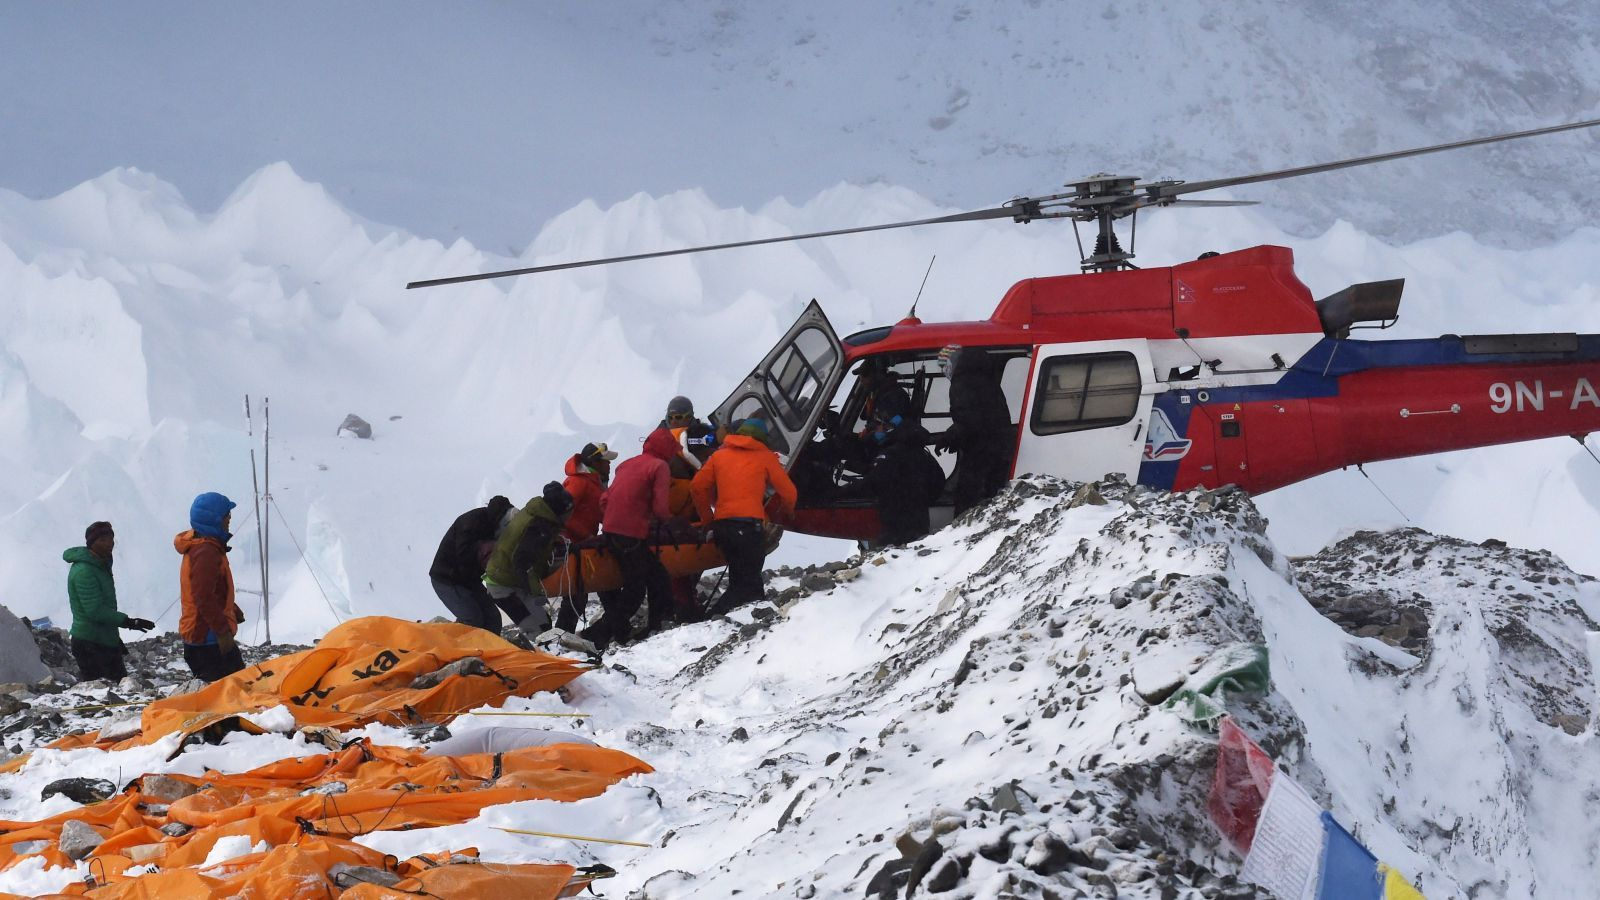 best images about life death on mount everest 17 best images about life death on mount everest 17 search and top of mount everest